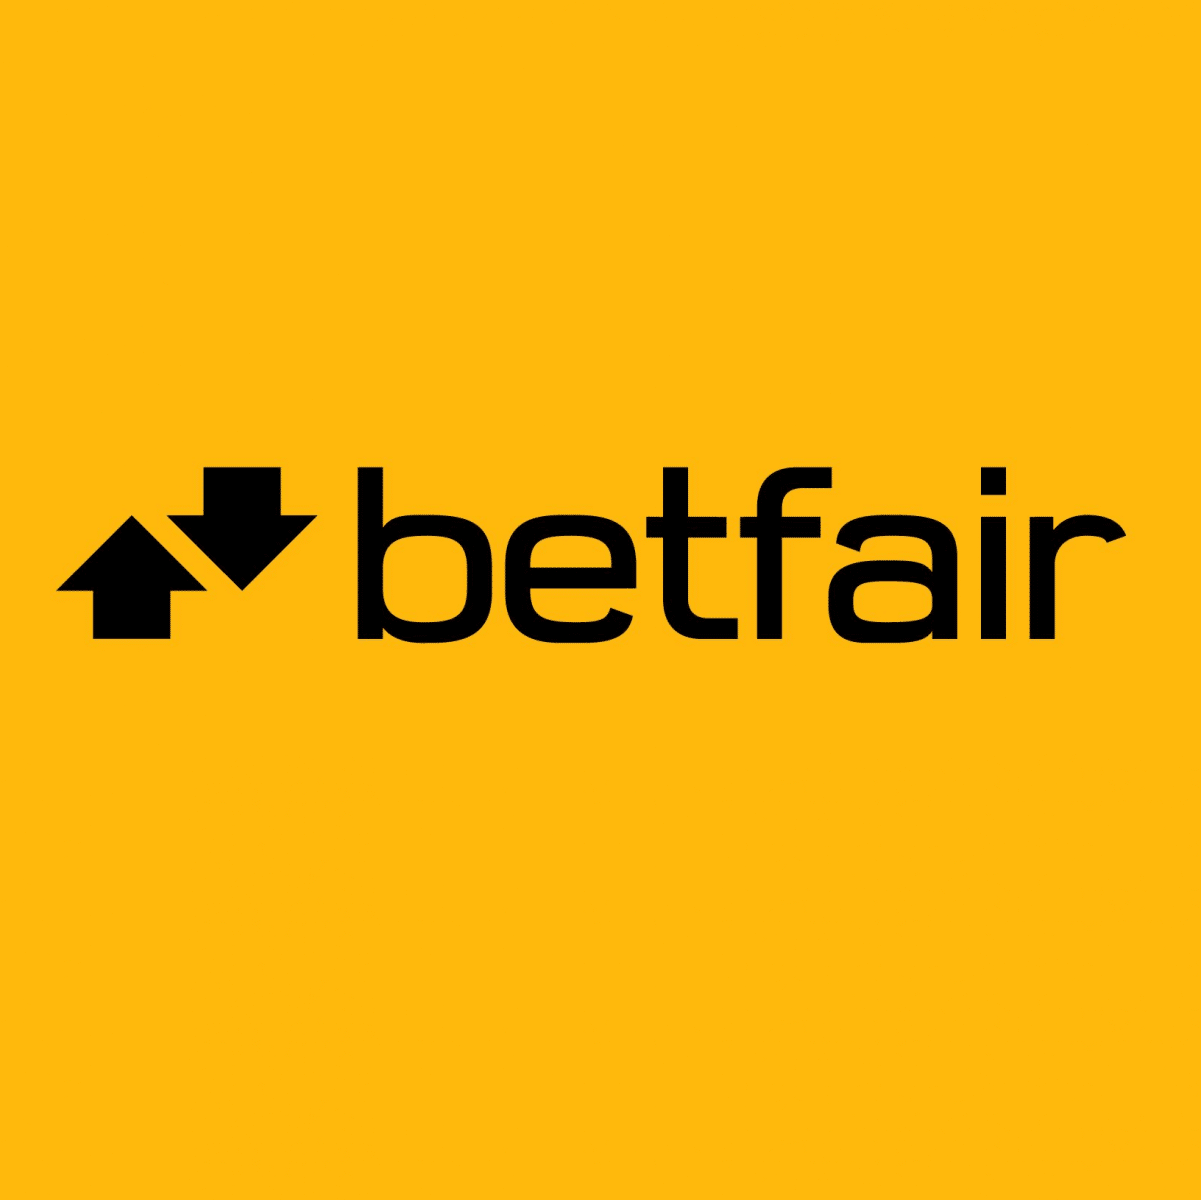 Afl betting preview on betfair cryptocurrency trading bot cs